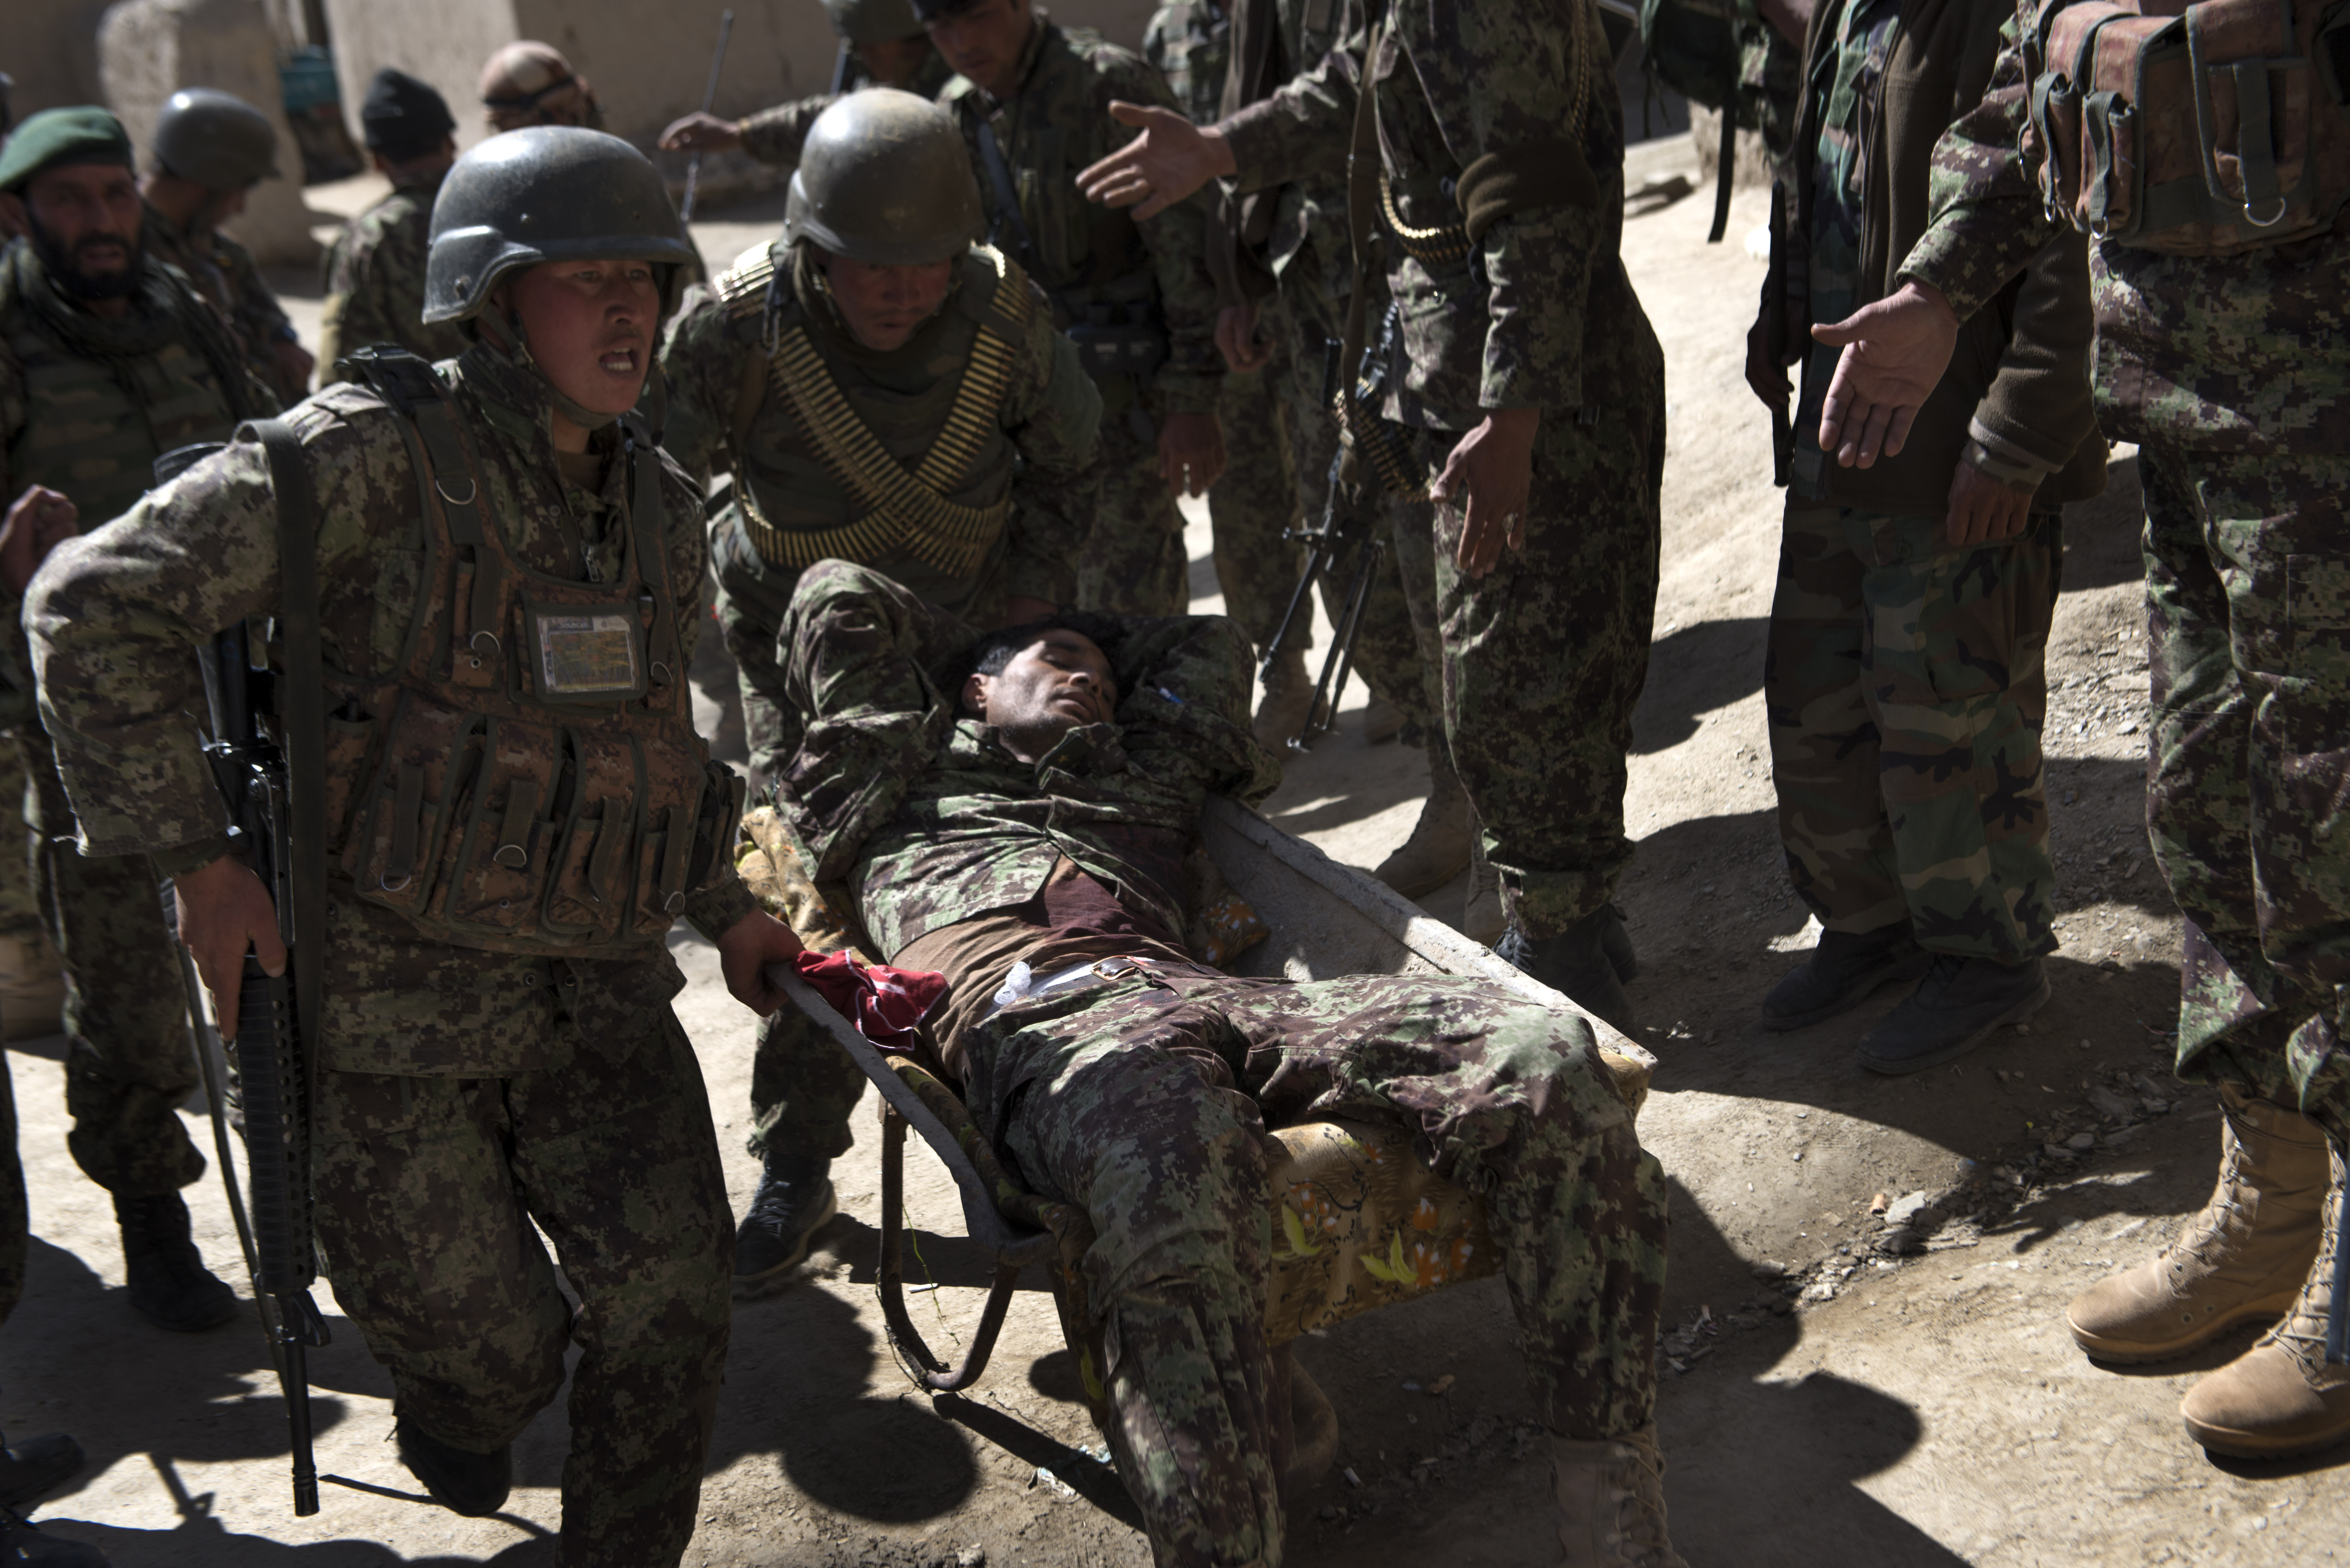 Afghan Army soldiers carry their comrade in a wheel-barrow after he was shot during a firefight on Tuesday April 2, 2013 in Wardak Province.